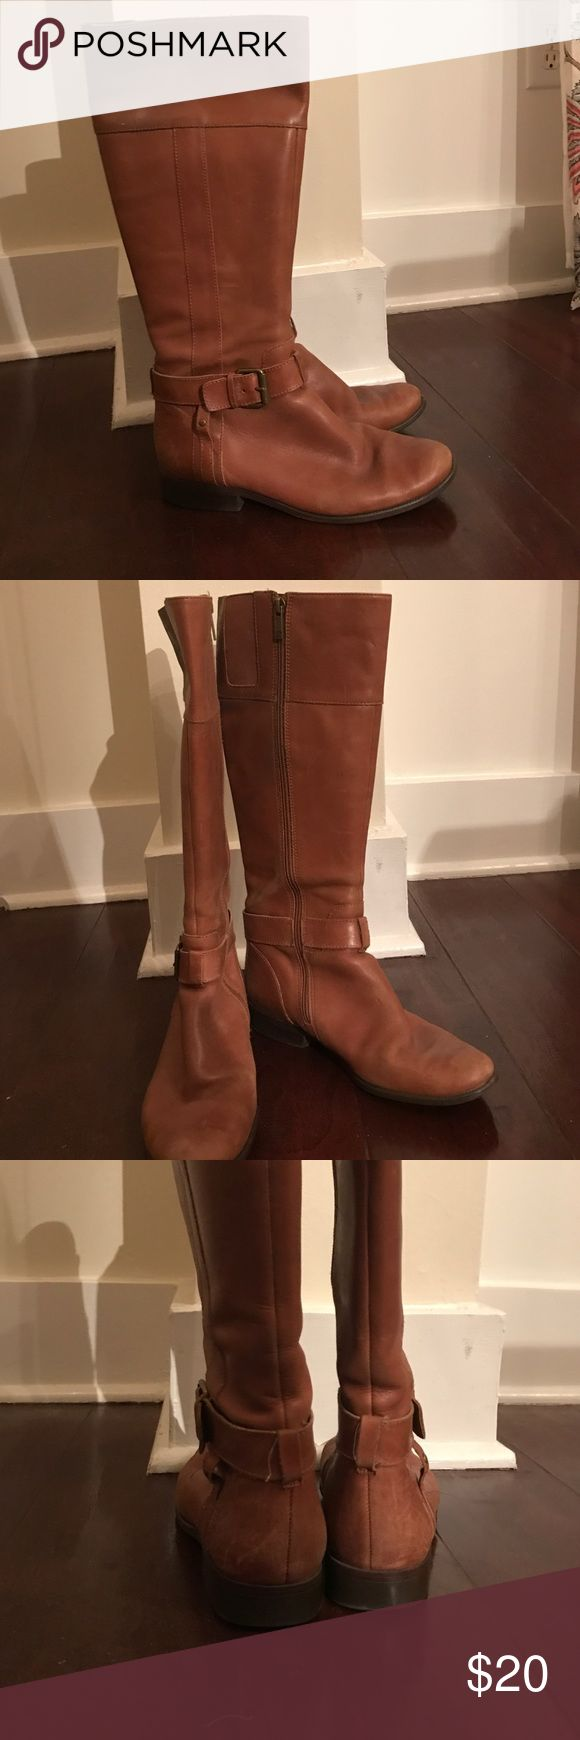 Anne Klein camel riding boots Gently worn riding boots. Zipper on inside of each boot and hit just below the knee. Anne Klein Shoes